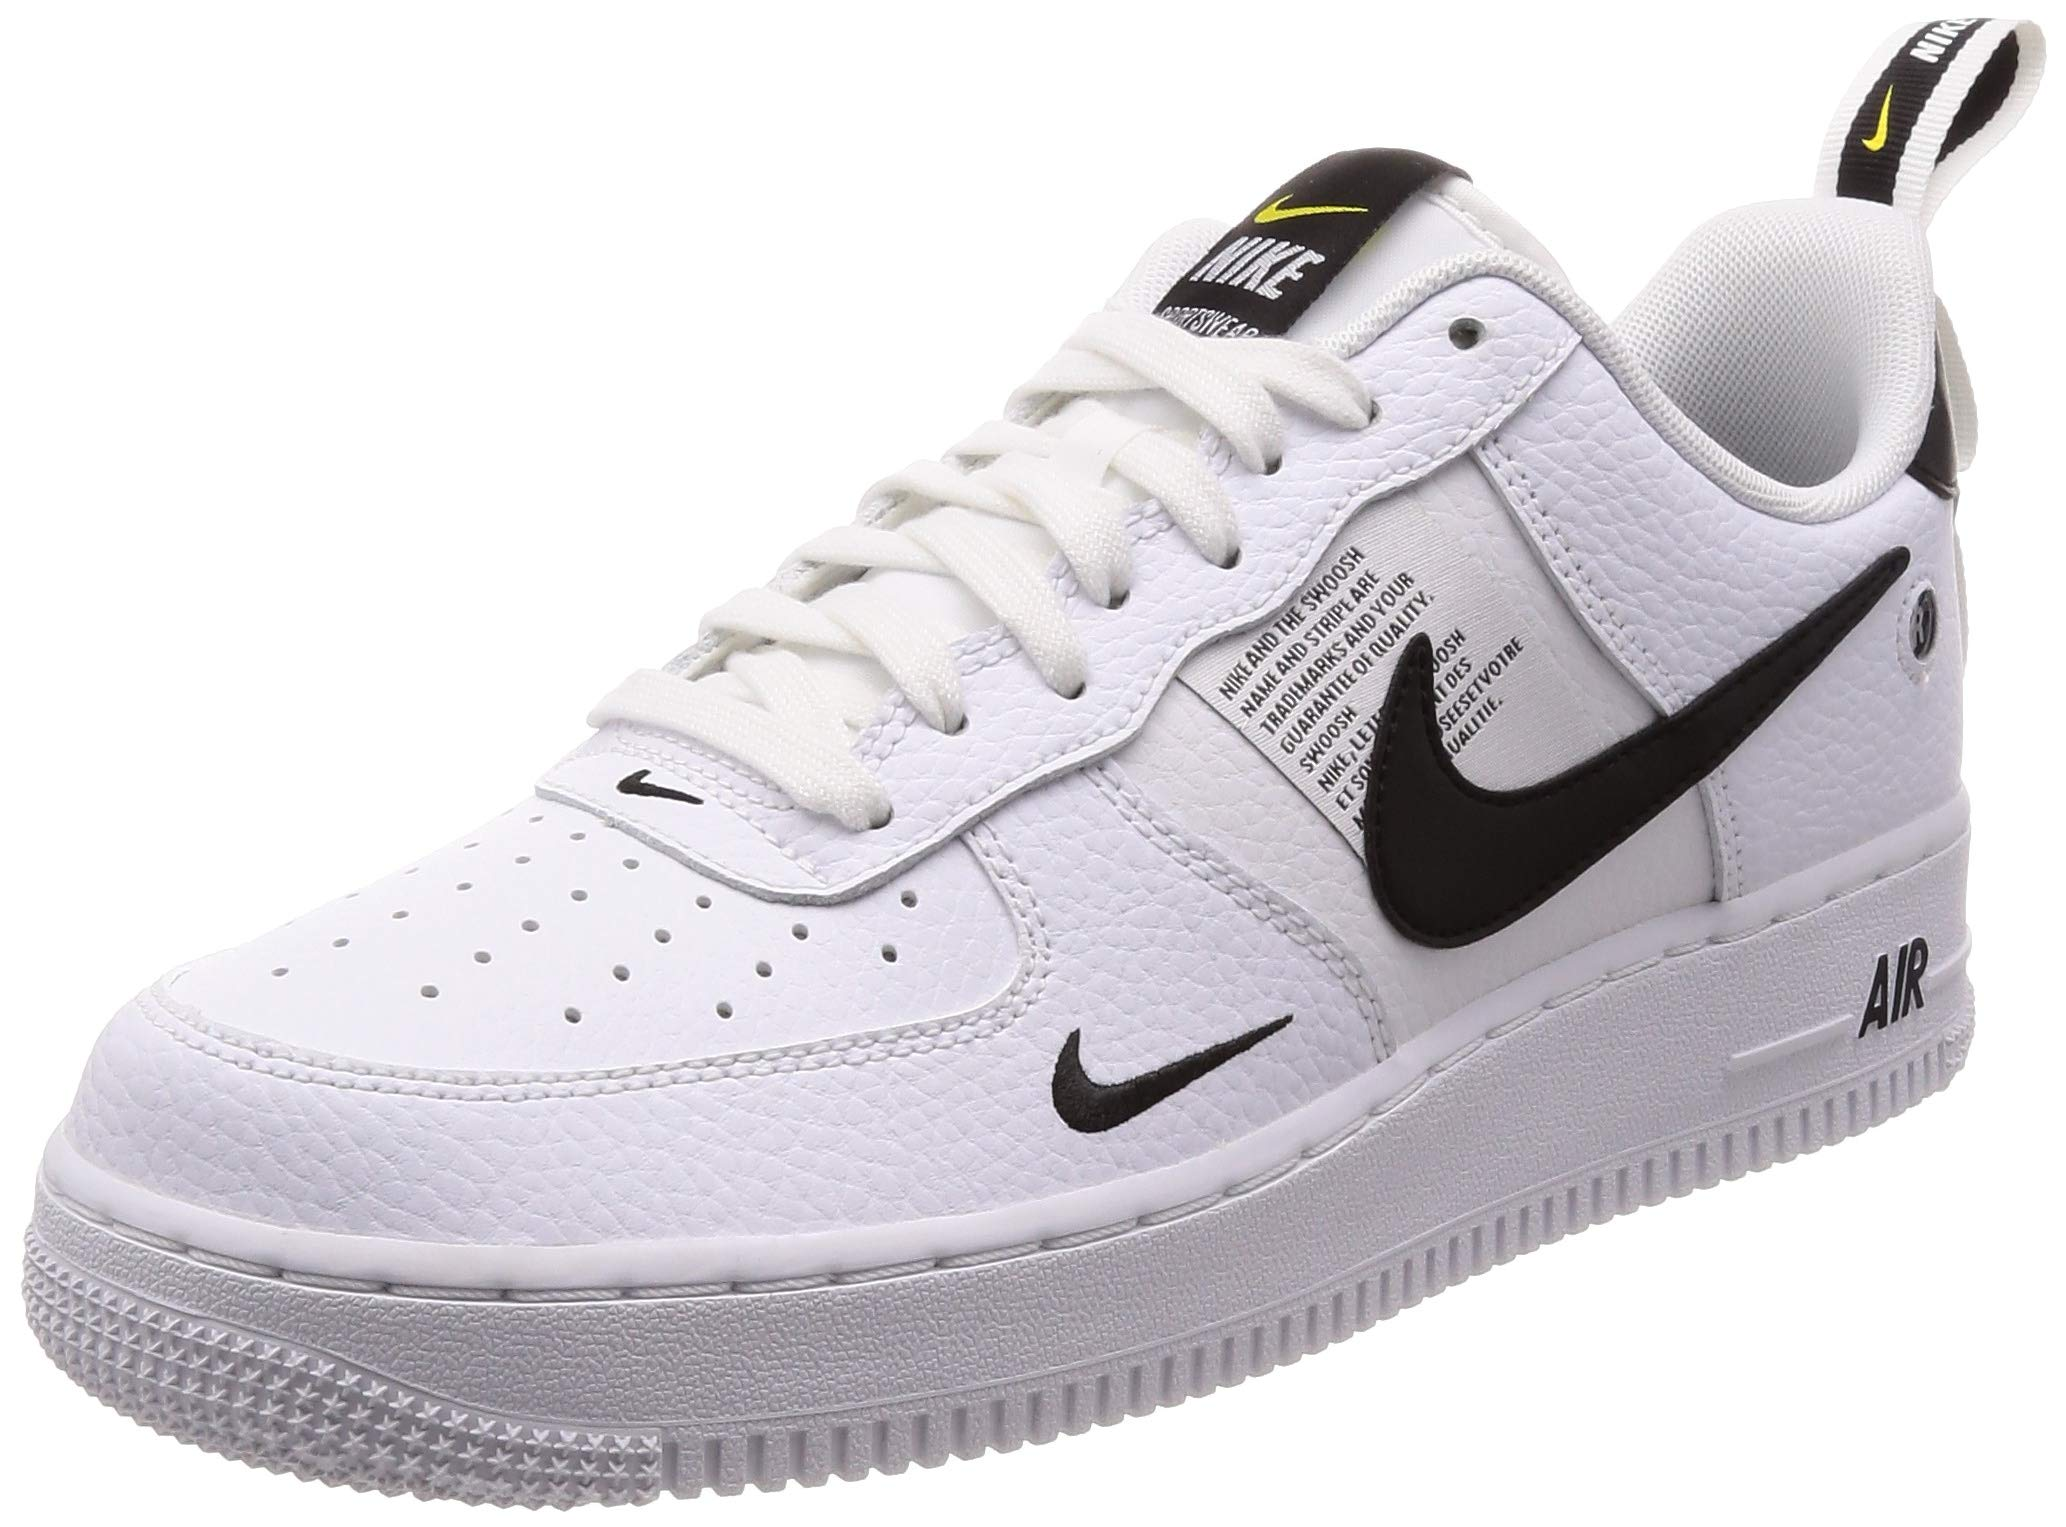 huge selection of 651a3 bed54 Galleon - NIKE Men s Air Force 1 07 LV8 Utility, White White-Black-Tour  Yellow, 12 M US